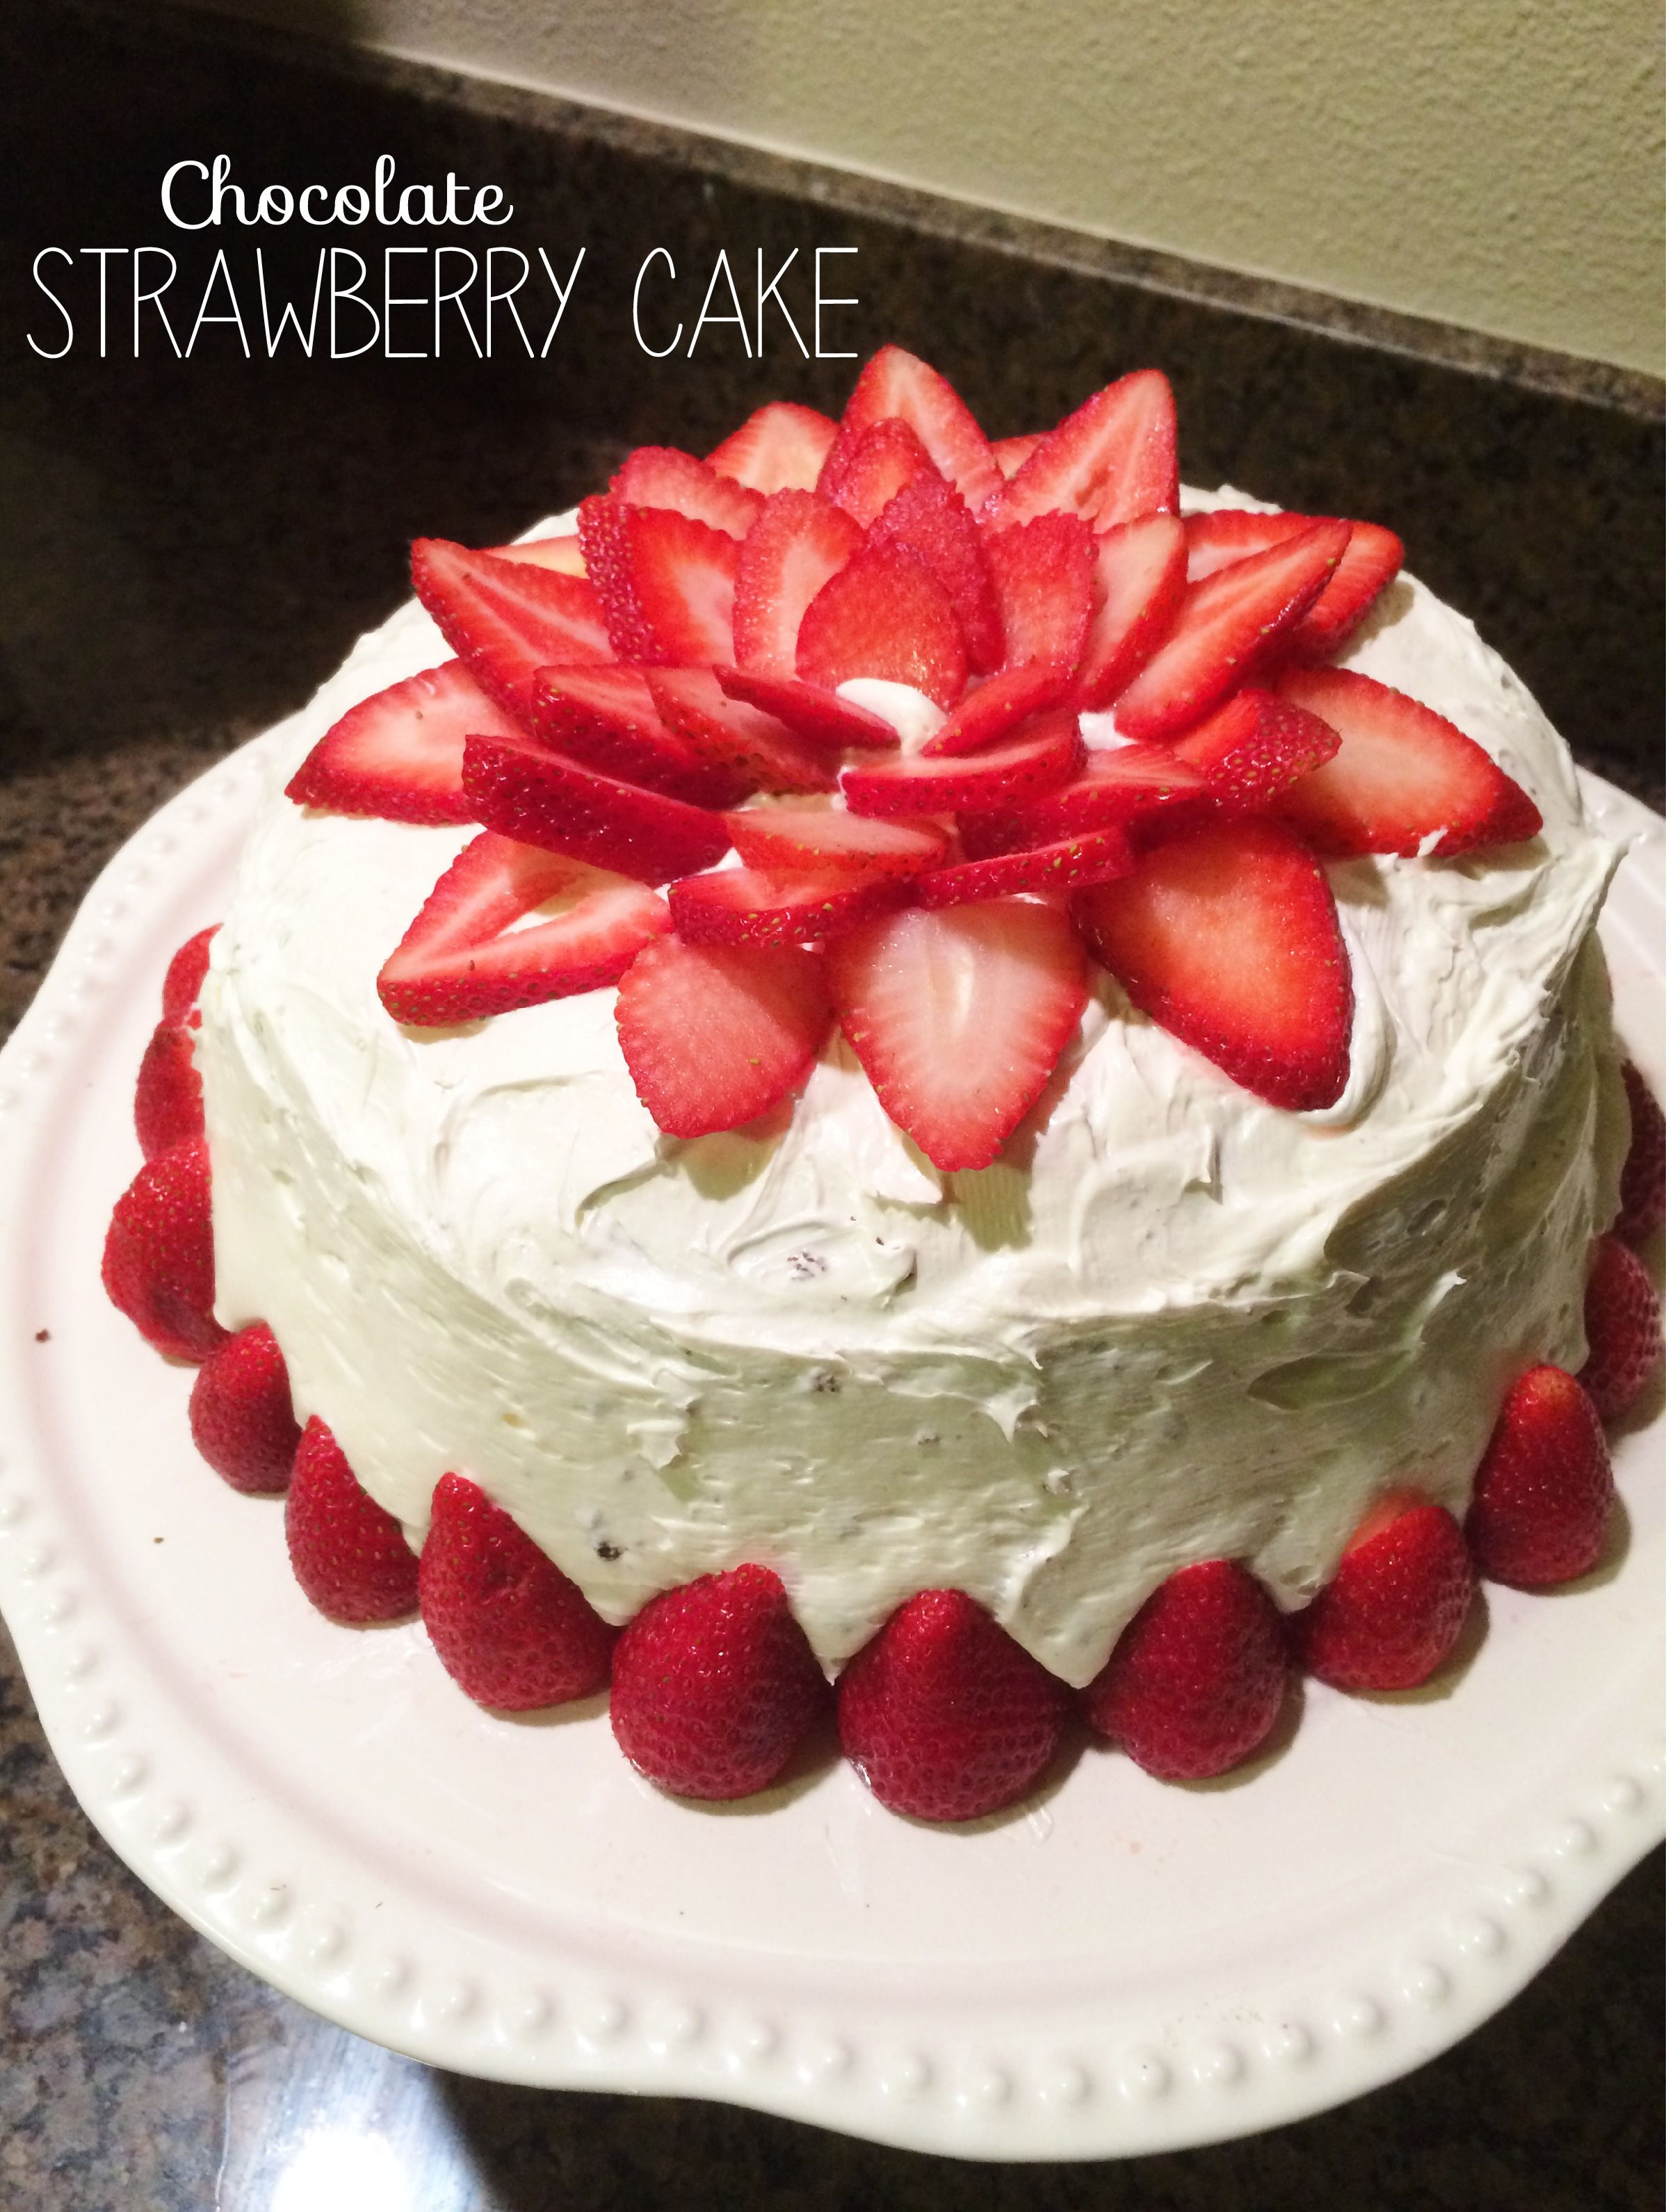 Chocolate Strawberry Cake The Sara Project Yep I will Make this